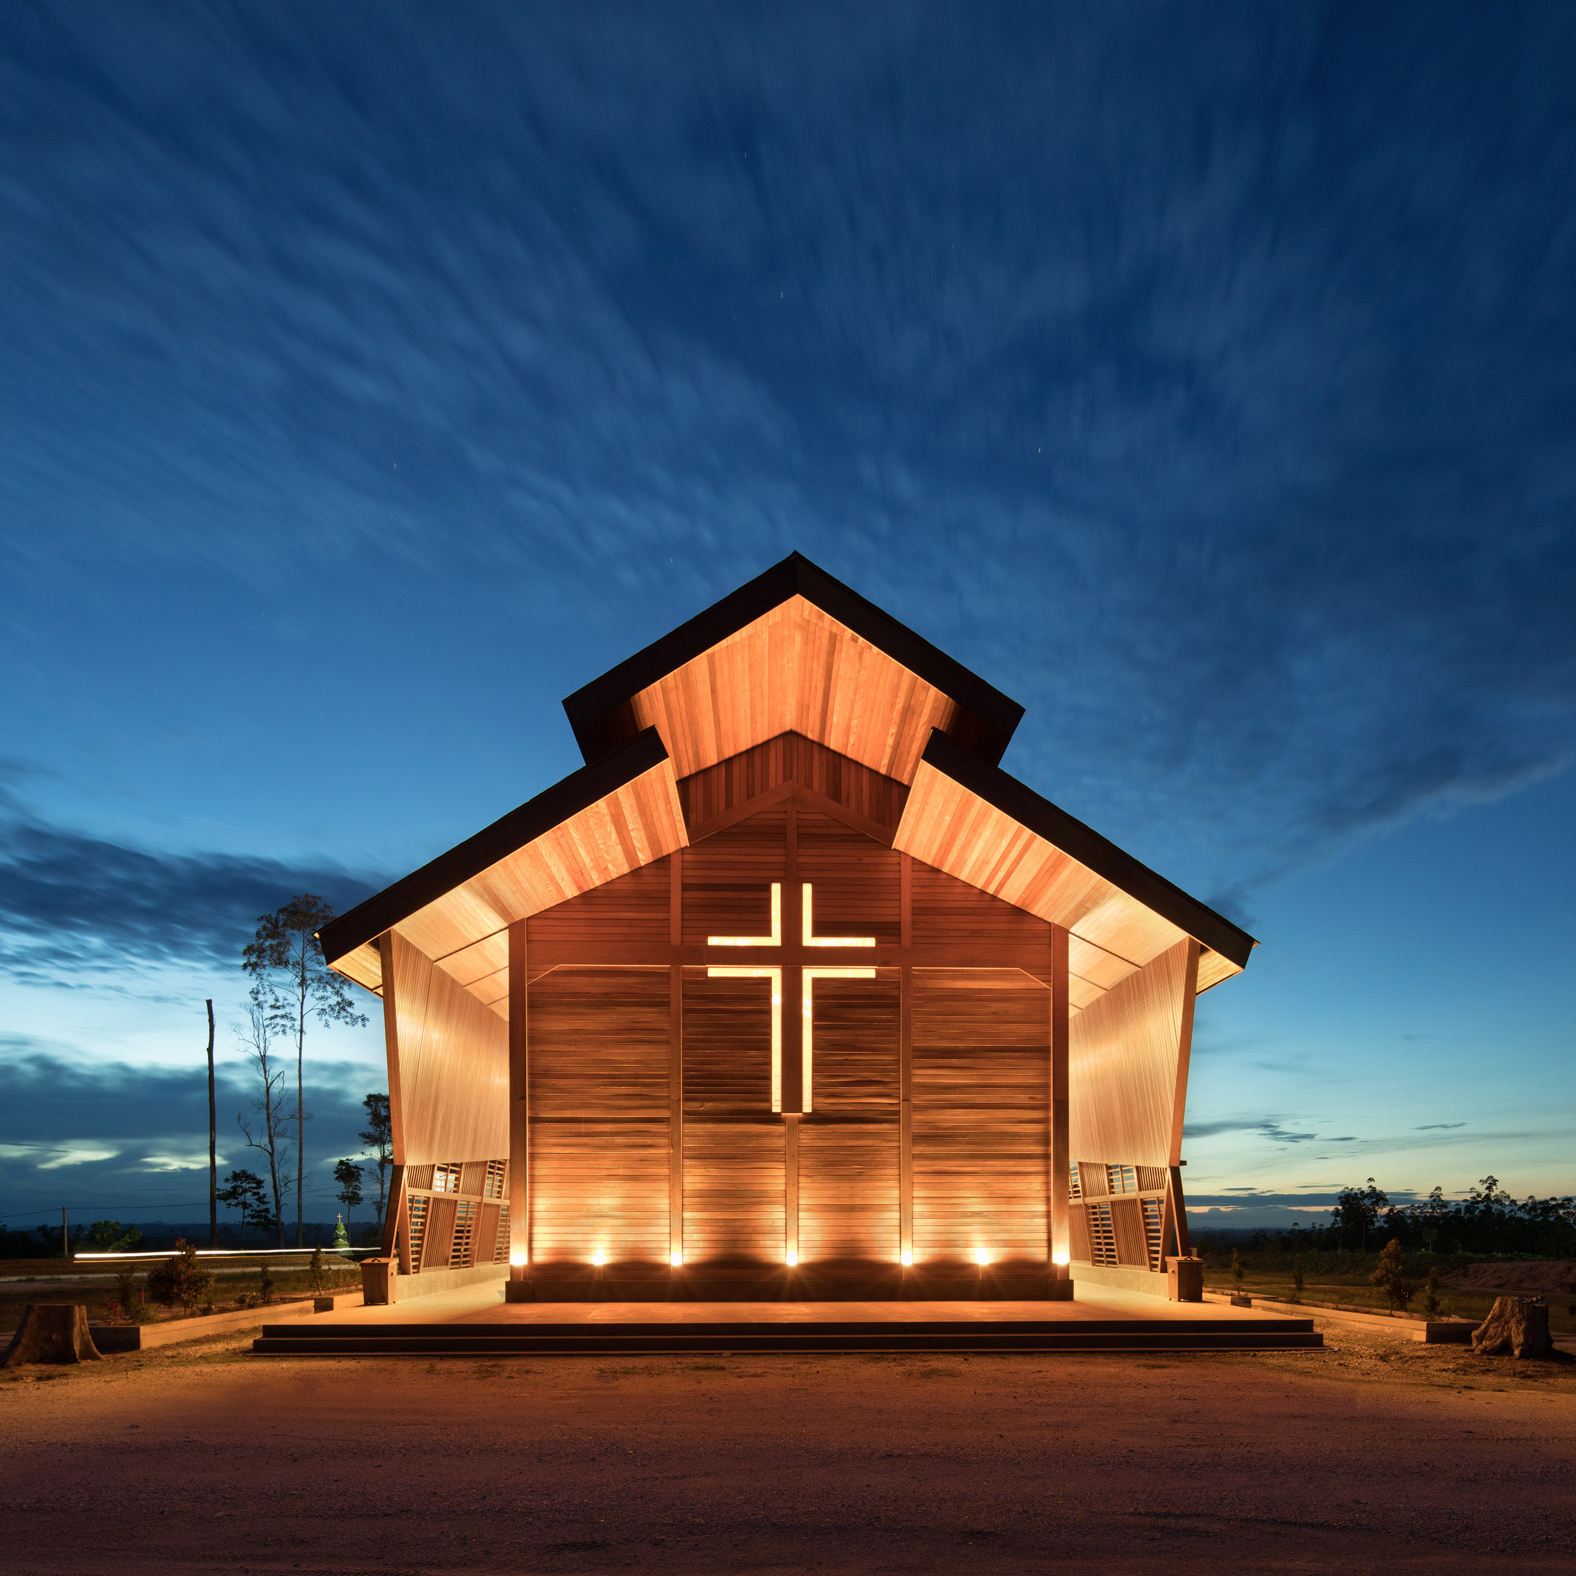 Timber church in Indonesia